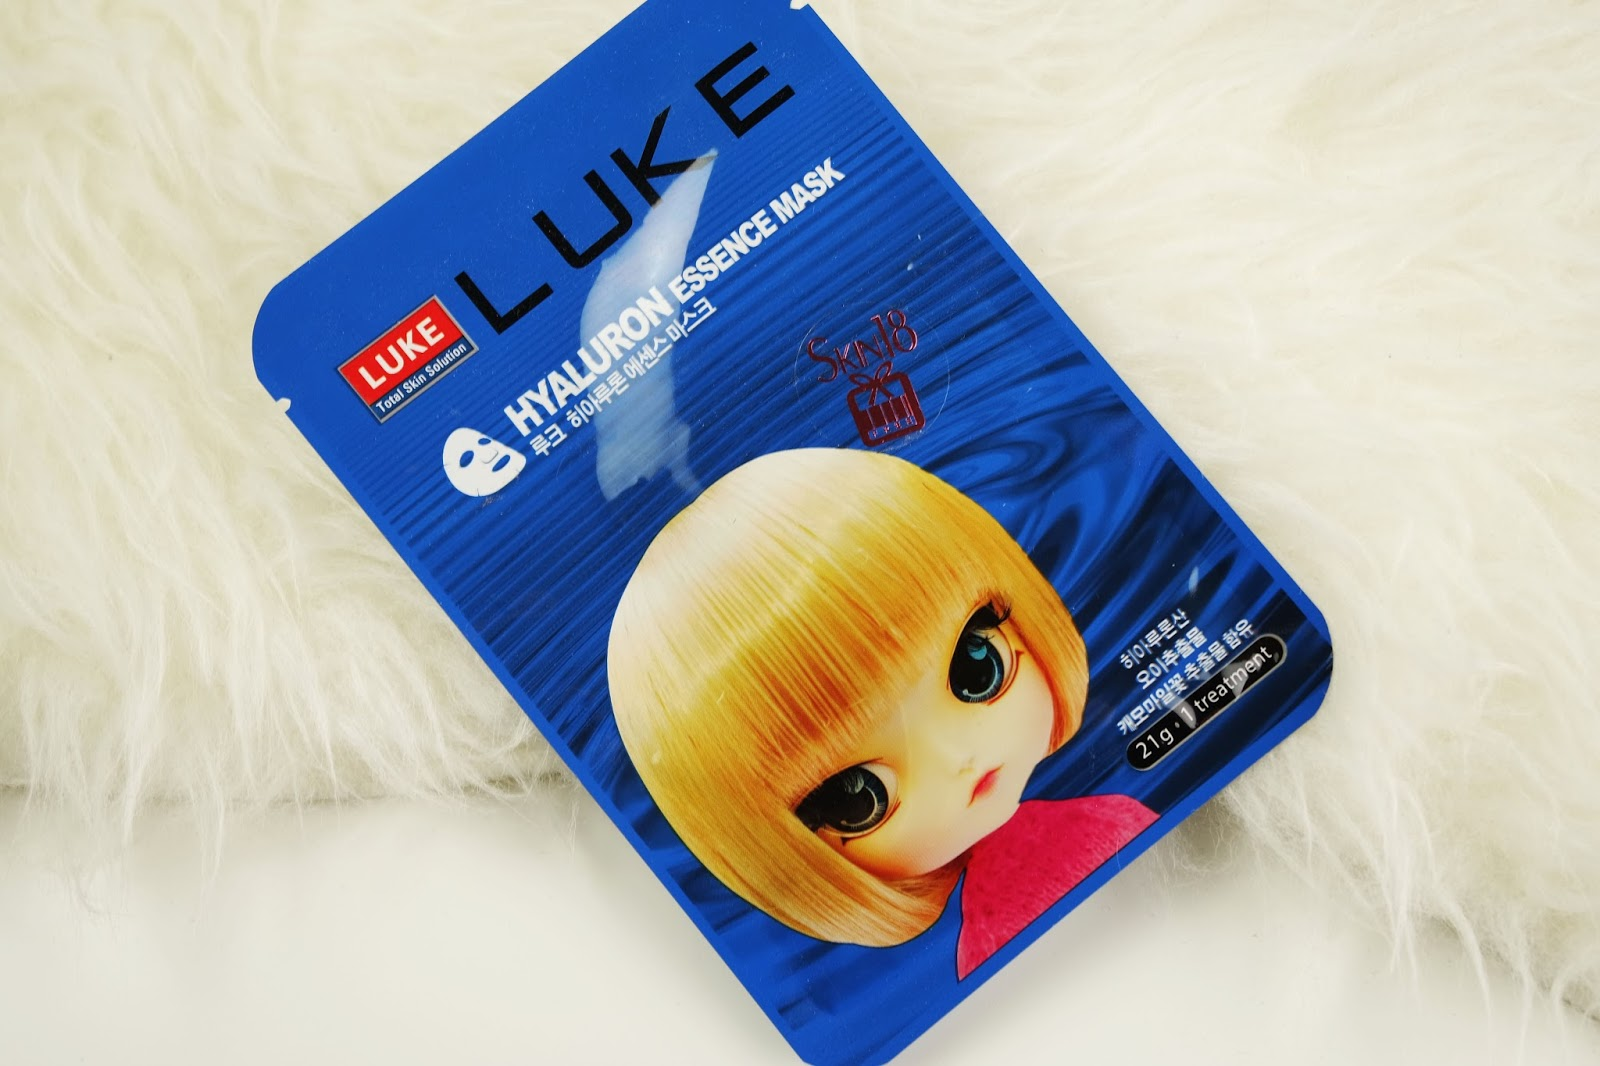 Luke Hyaluron Essence Mask